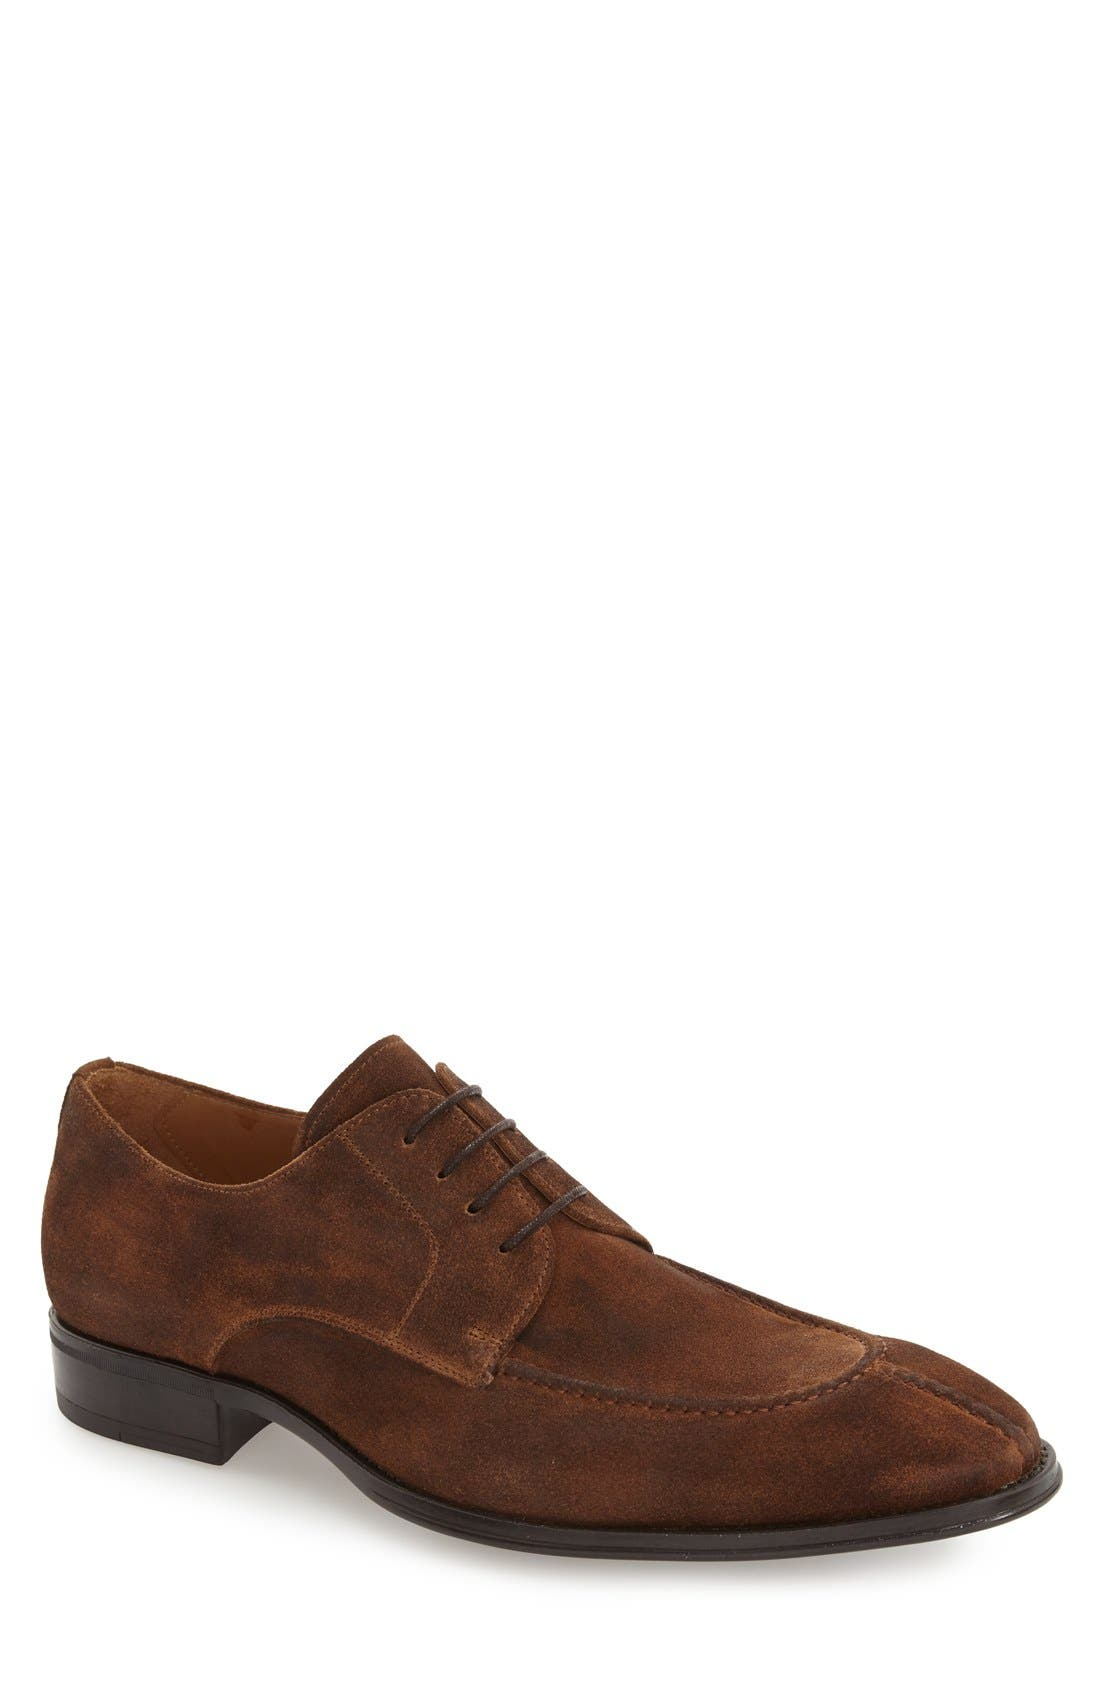 Alternate Image 1 Selected - Mezlan Cortino Split Toe Derby (Men)